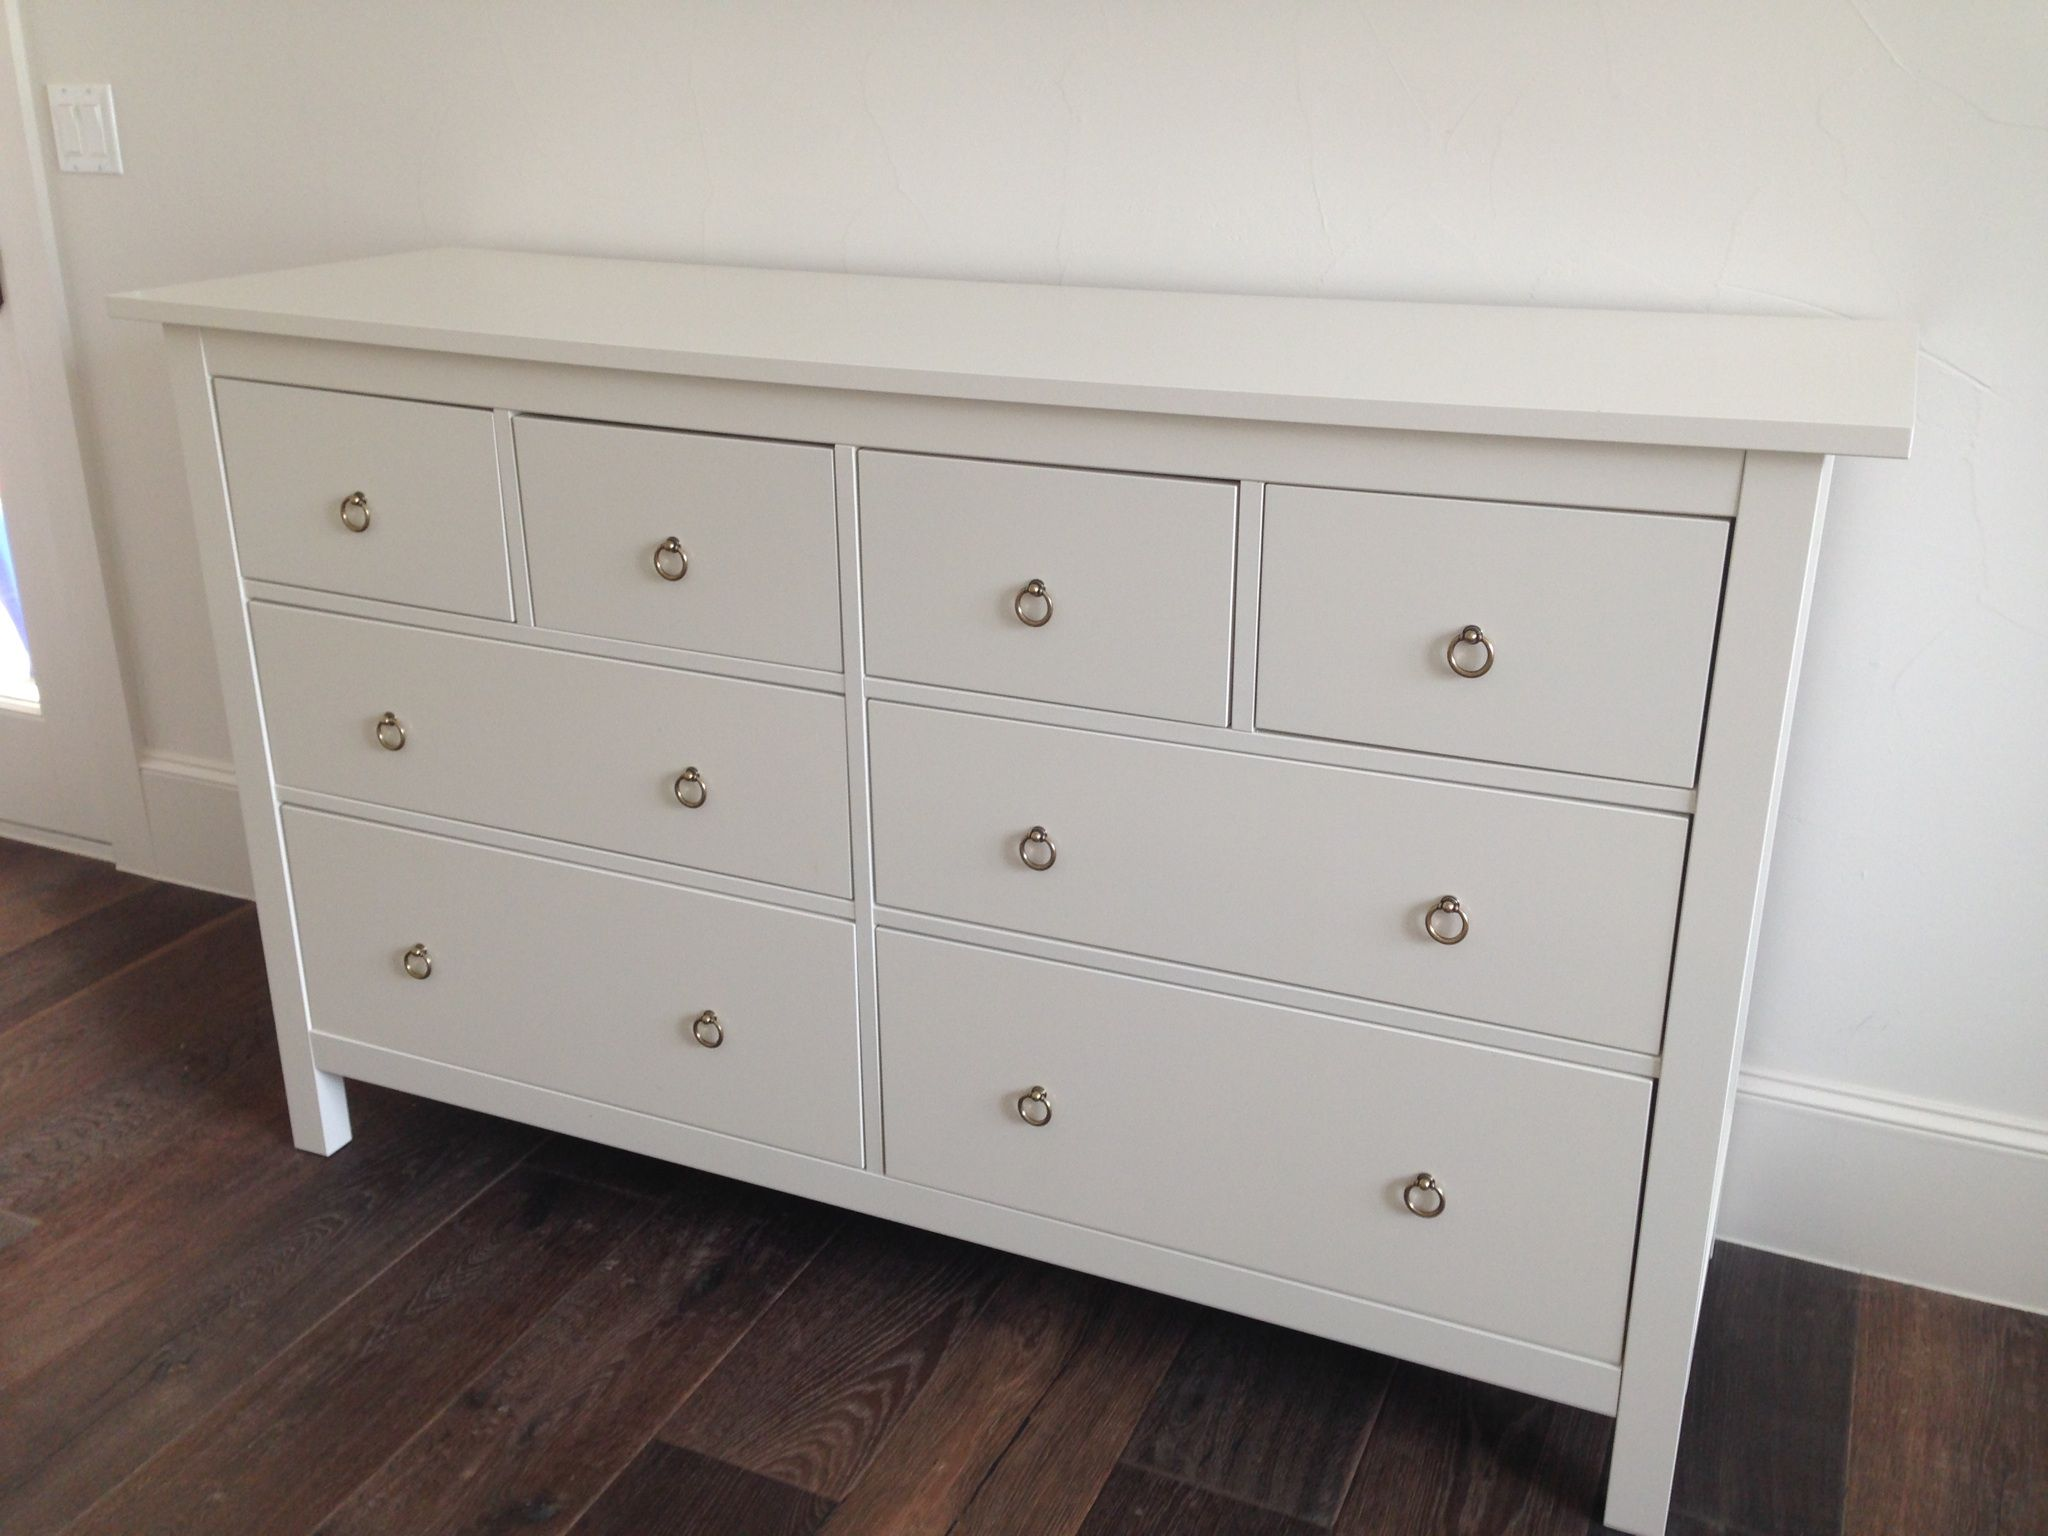 Ikea Hemnes Dresser With Gold Ring Pulls